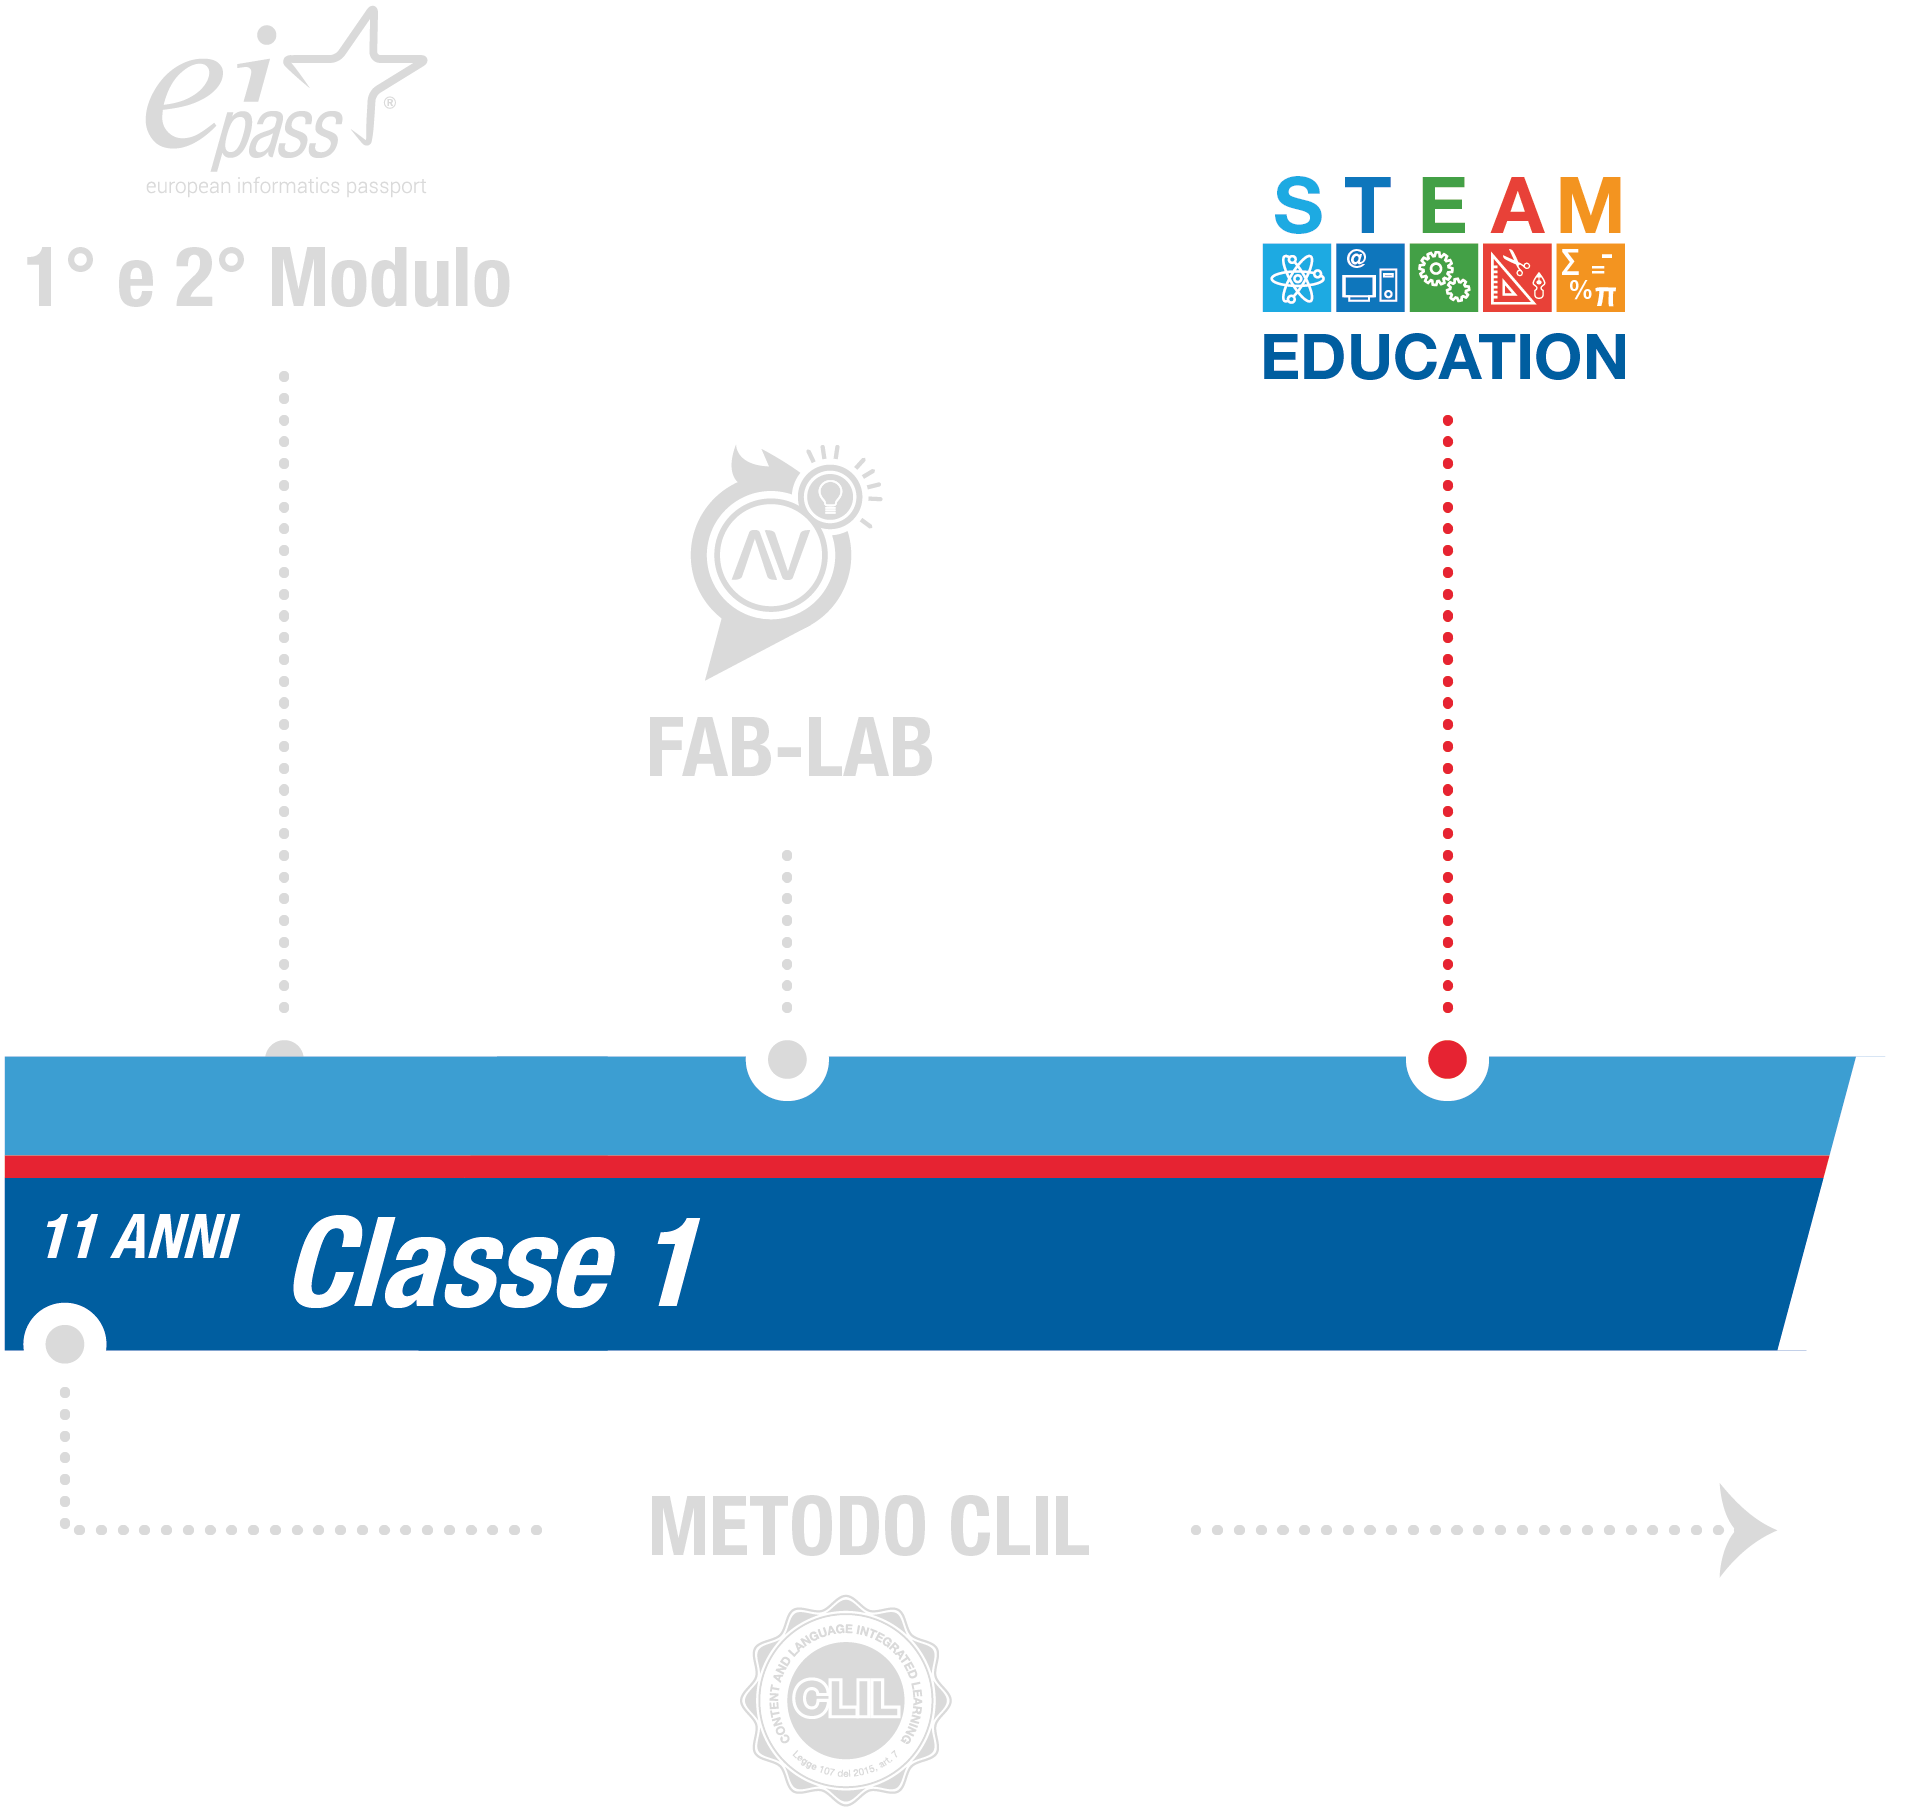 istituto-nobile-middle-school-steam-1anno